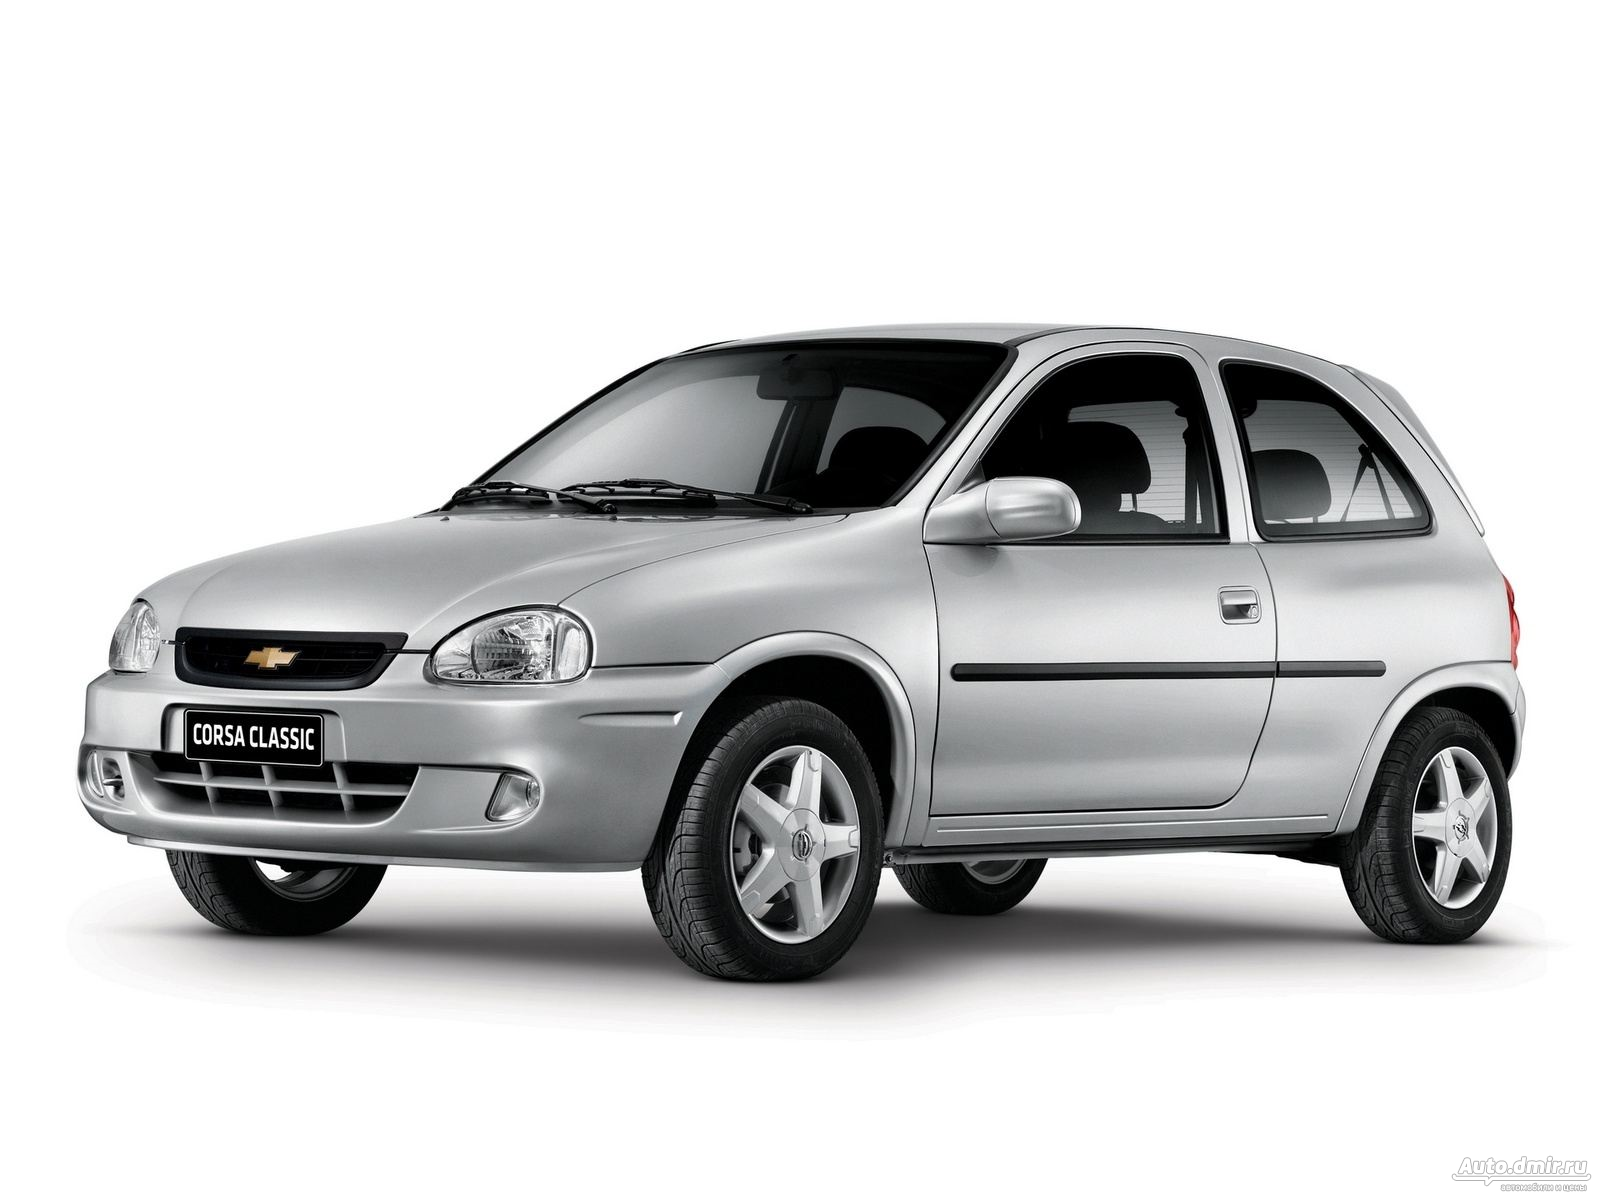 chevrolet corsa sedan (gm 4200) 1998 models